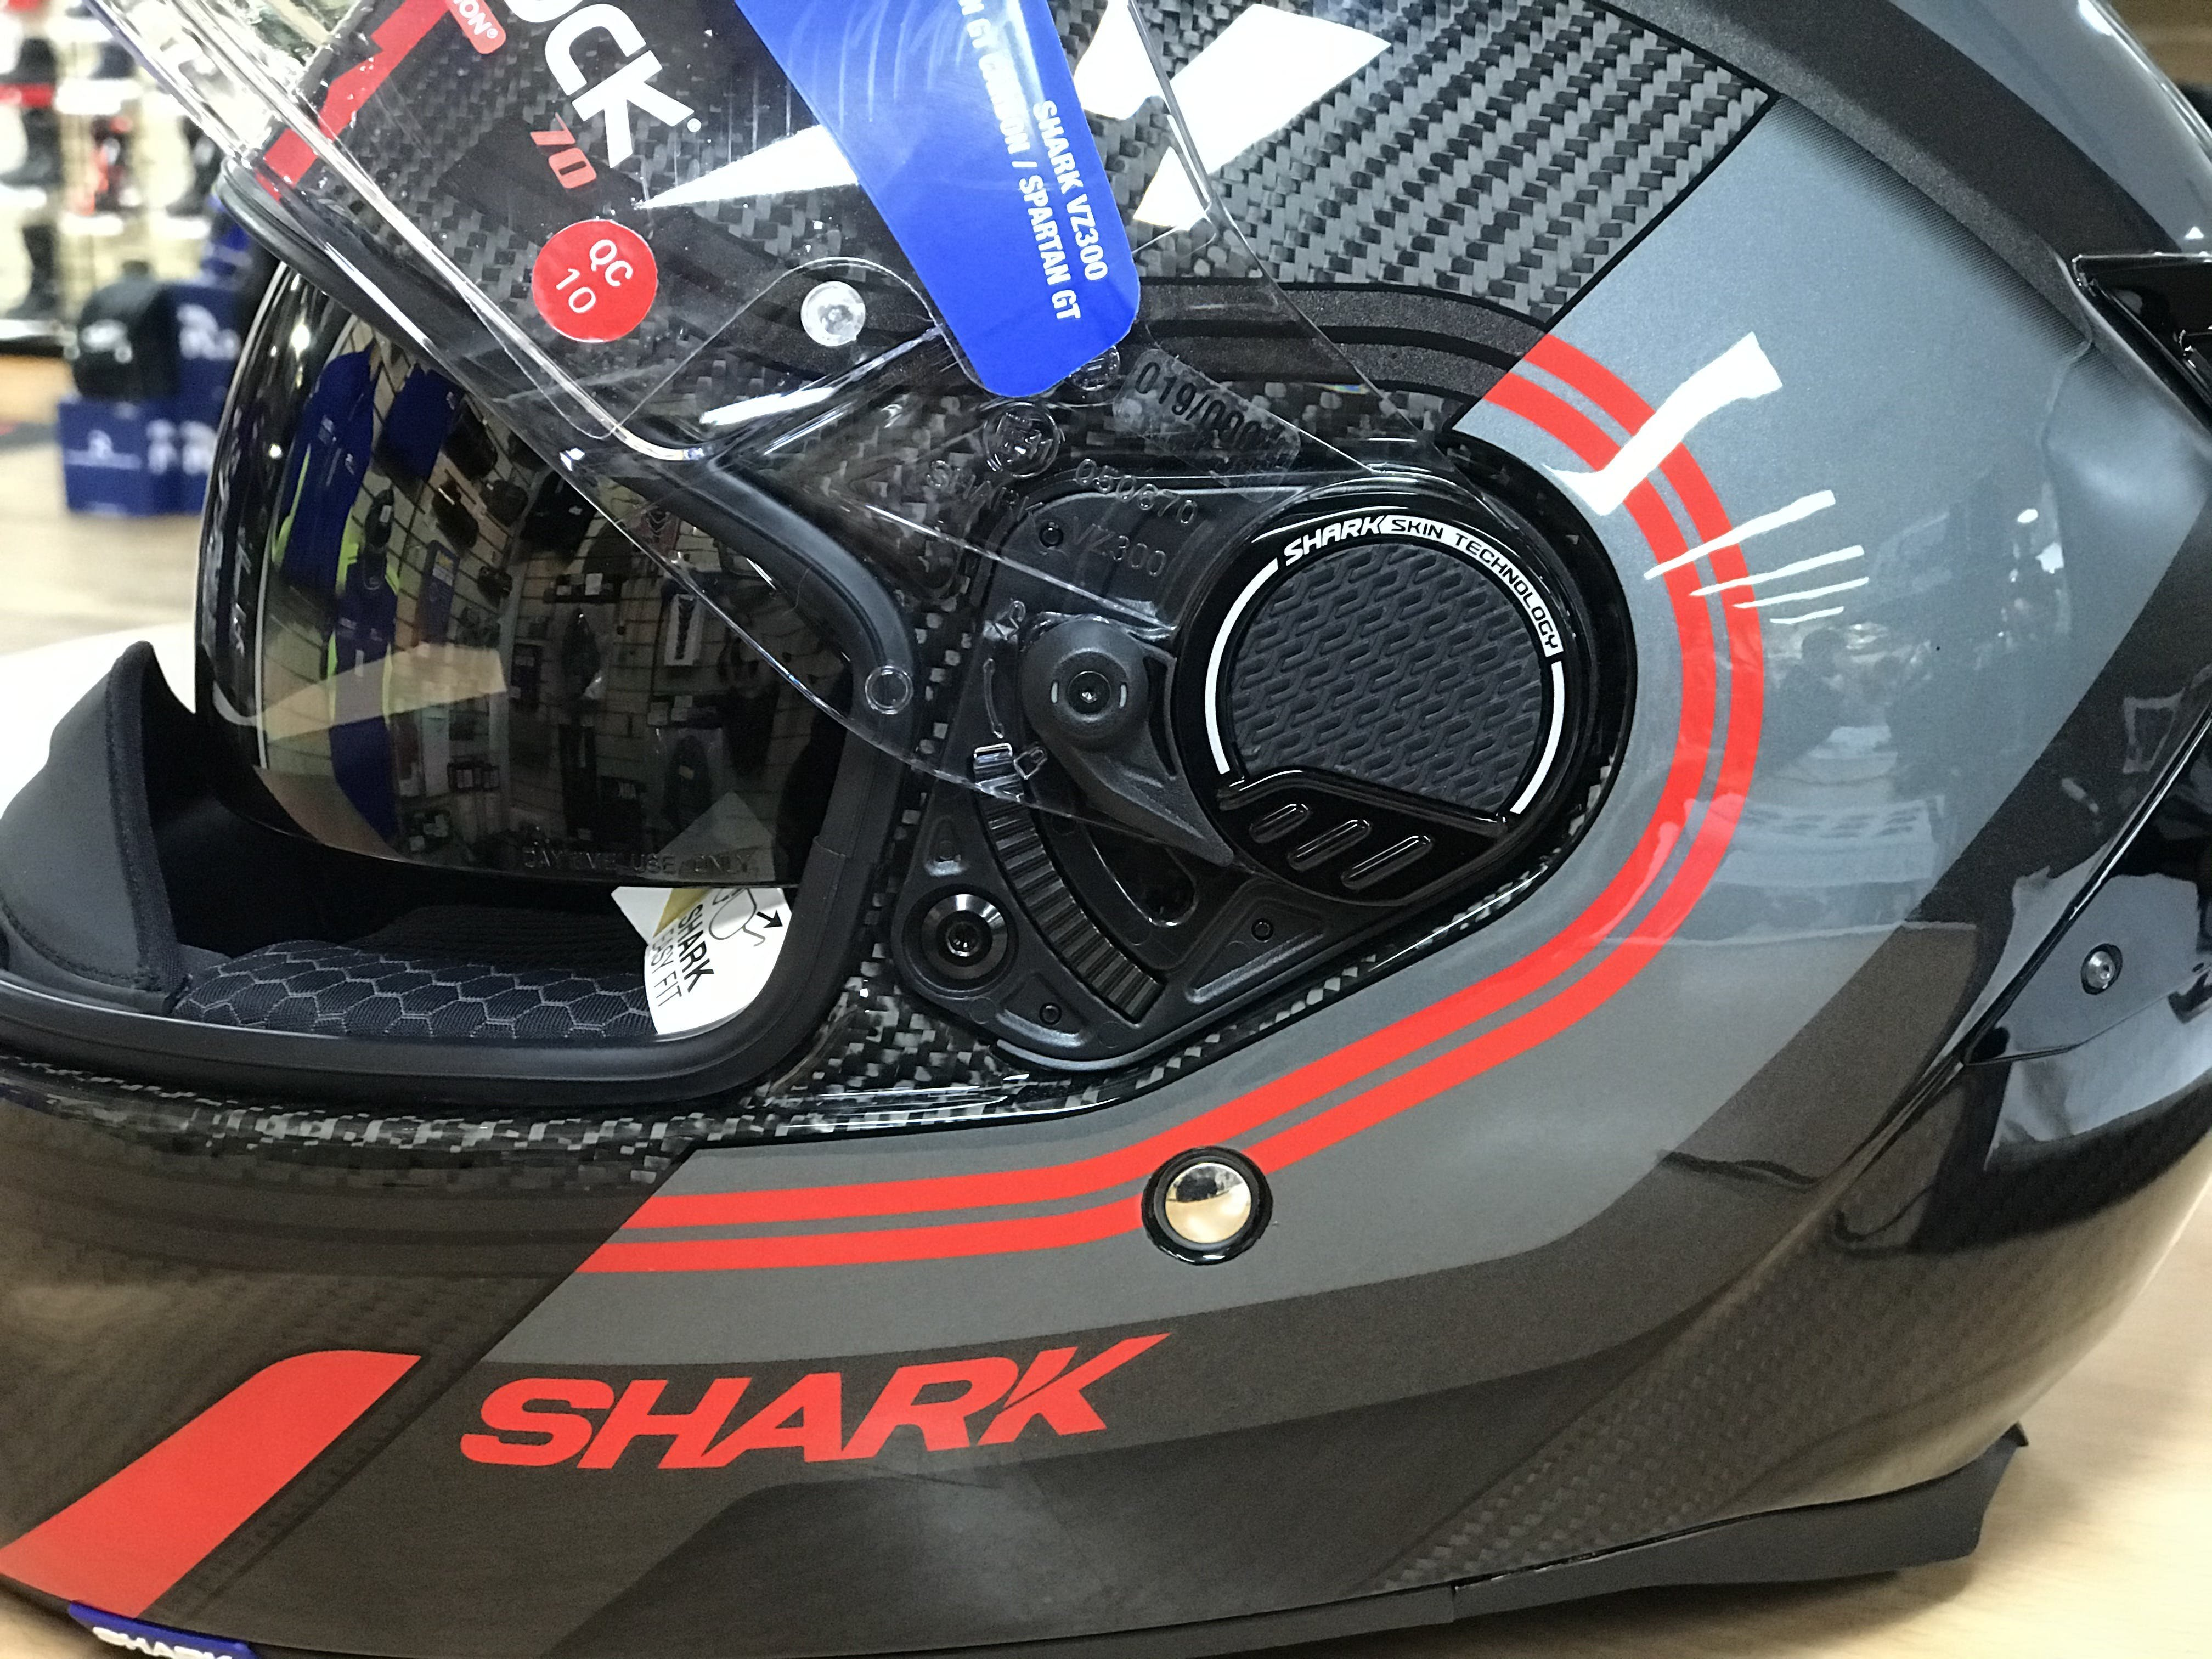 New visor with micro ratchet system for smooth visor operation on the Shark Carbon Spartan GT